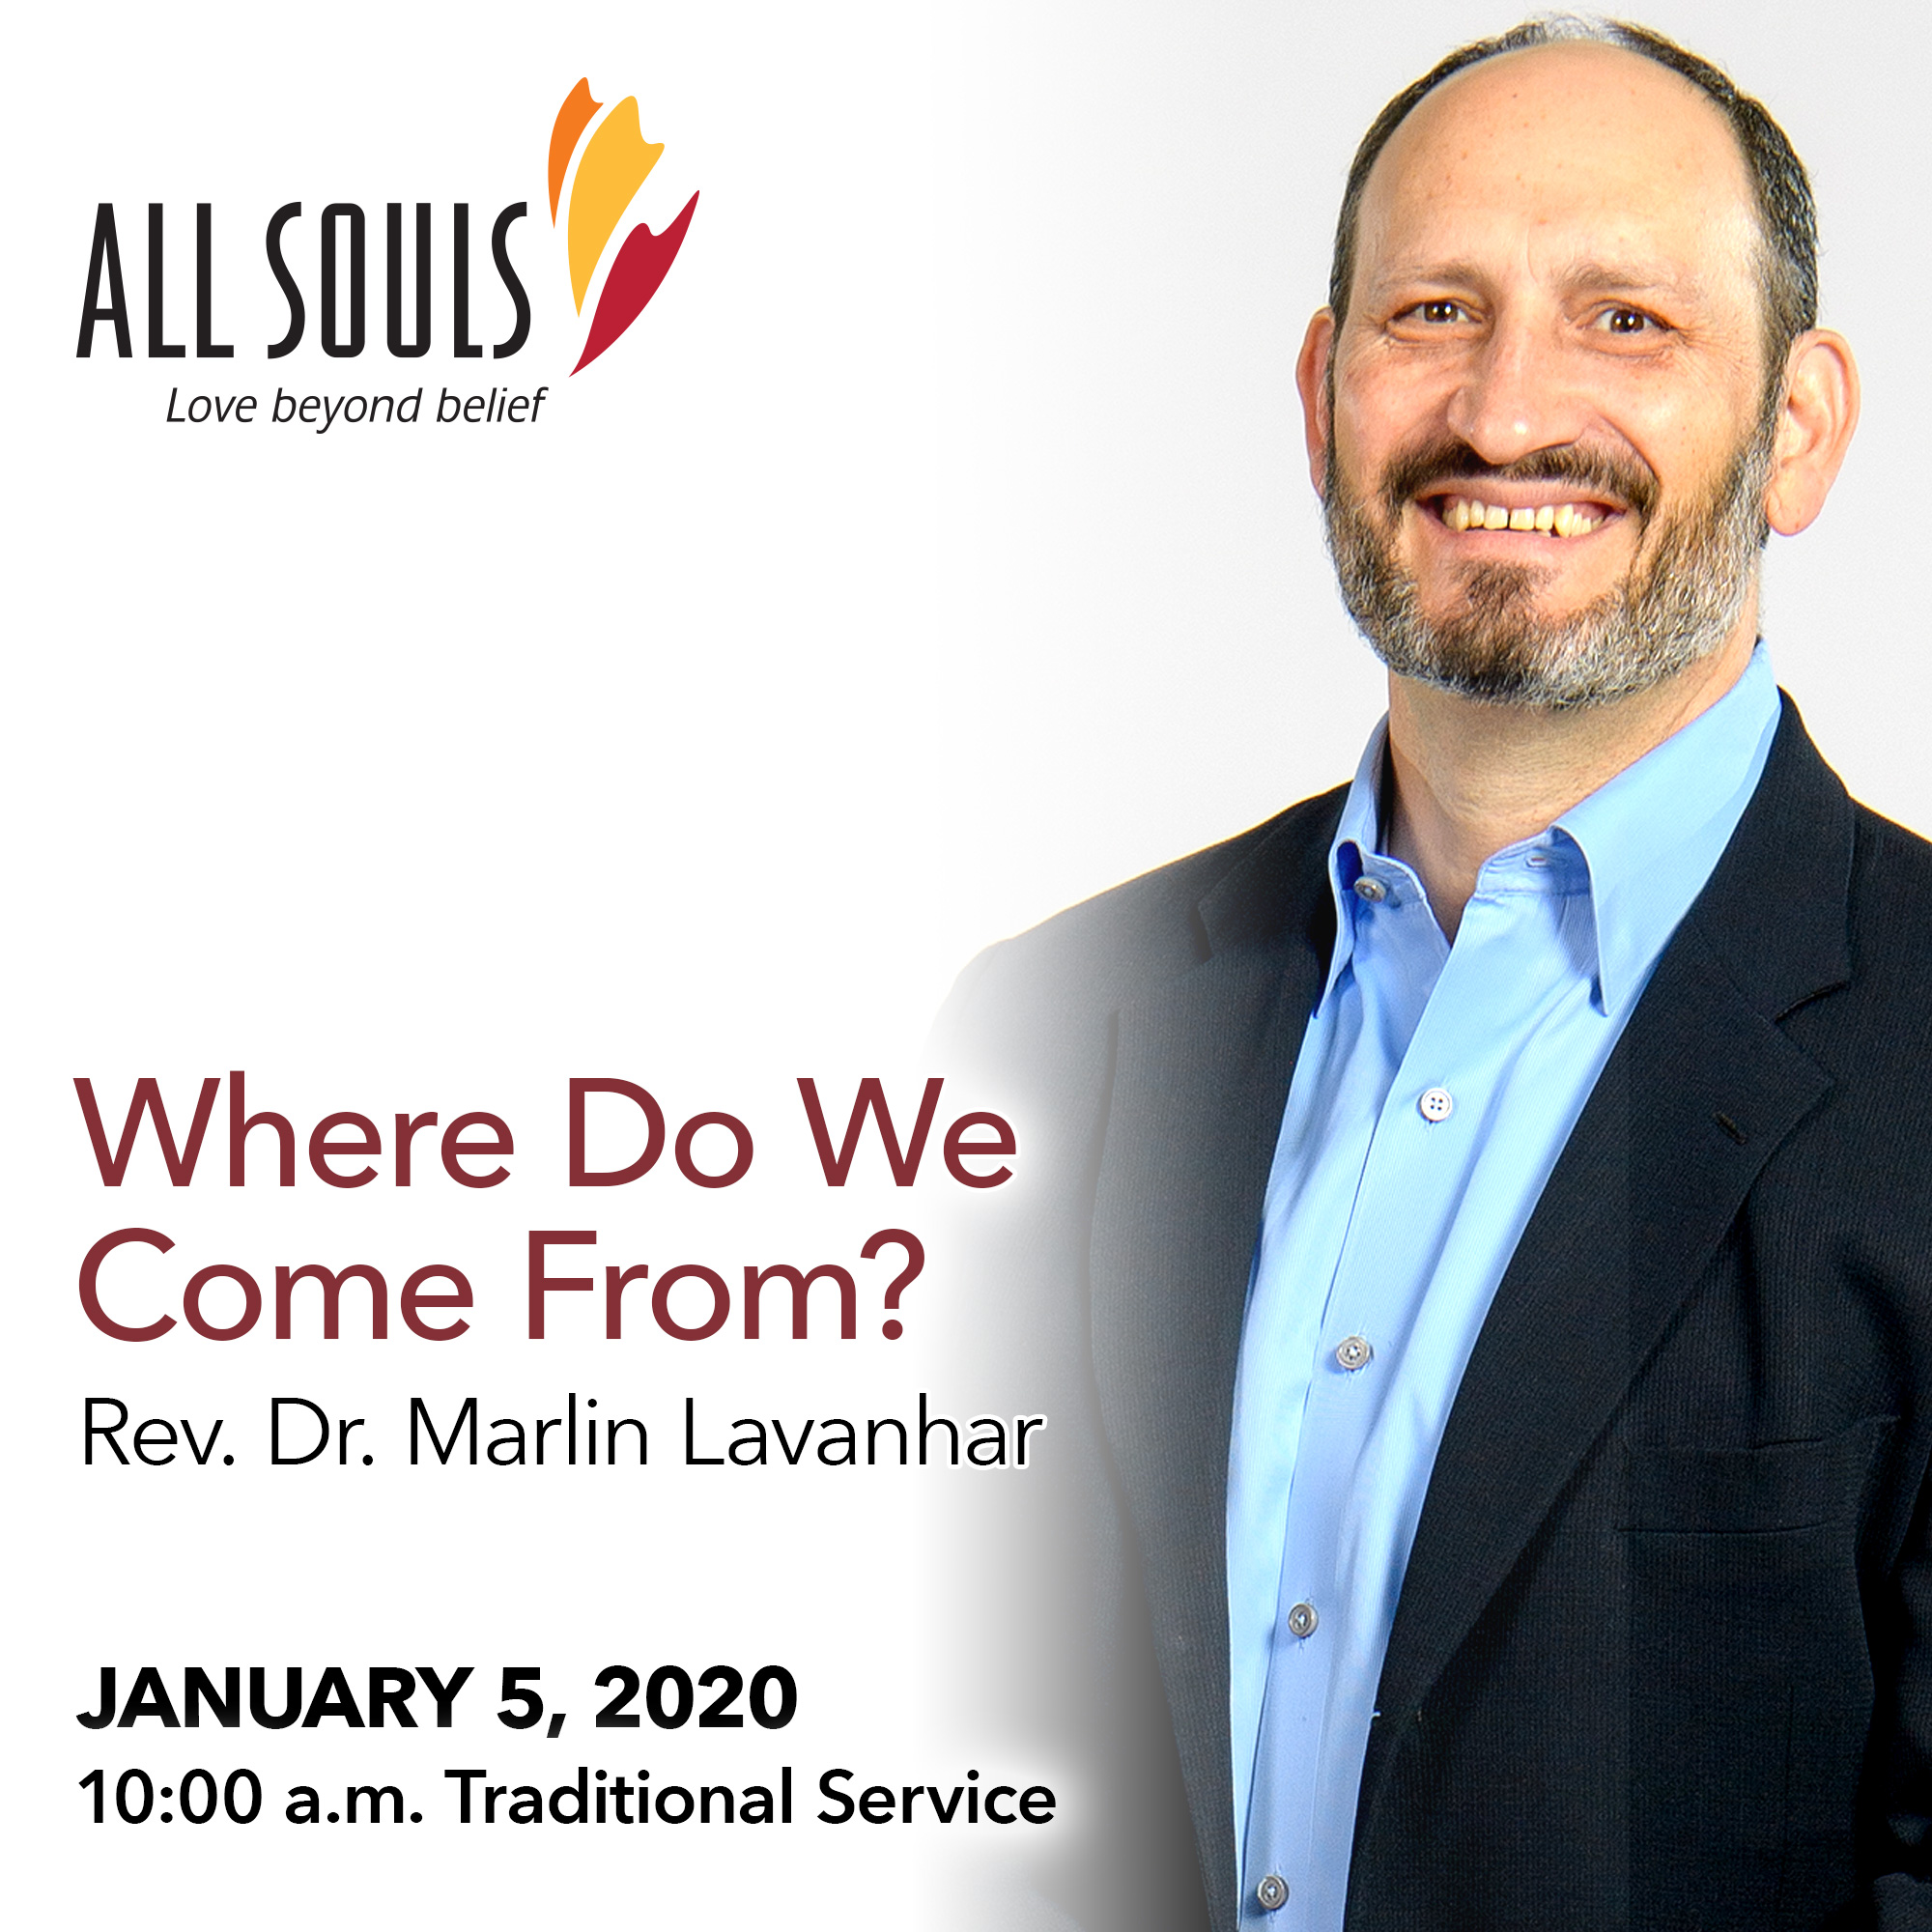 'WHERE DO WE COME FROM?' - A sermon by Rev. Dr. Marlin Lavanhar (Traditional Service) show art